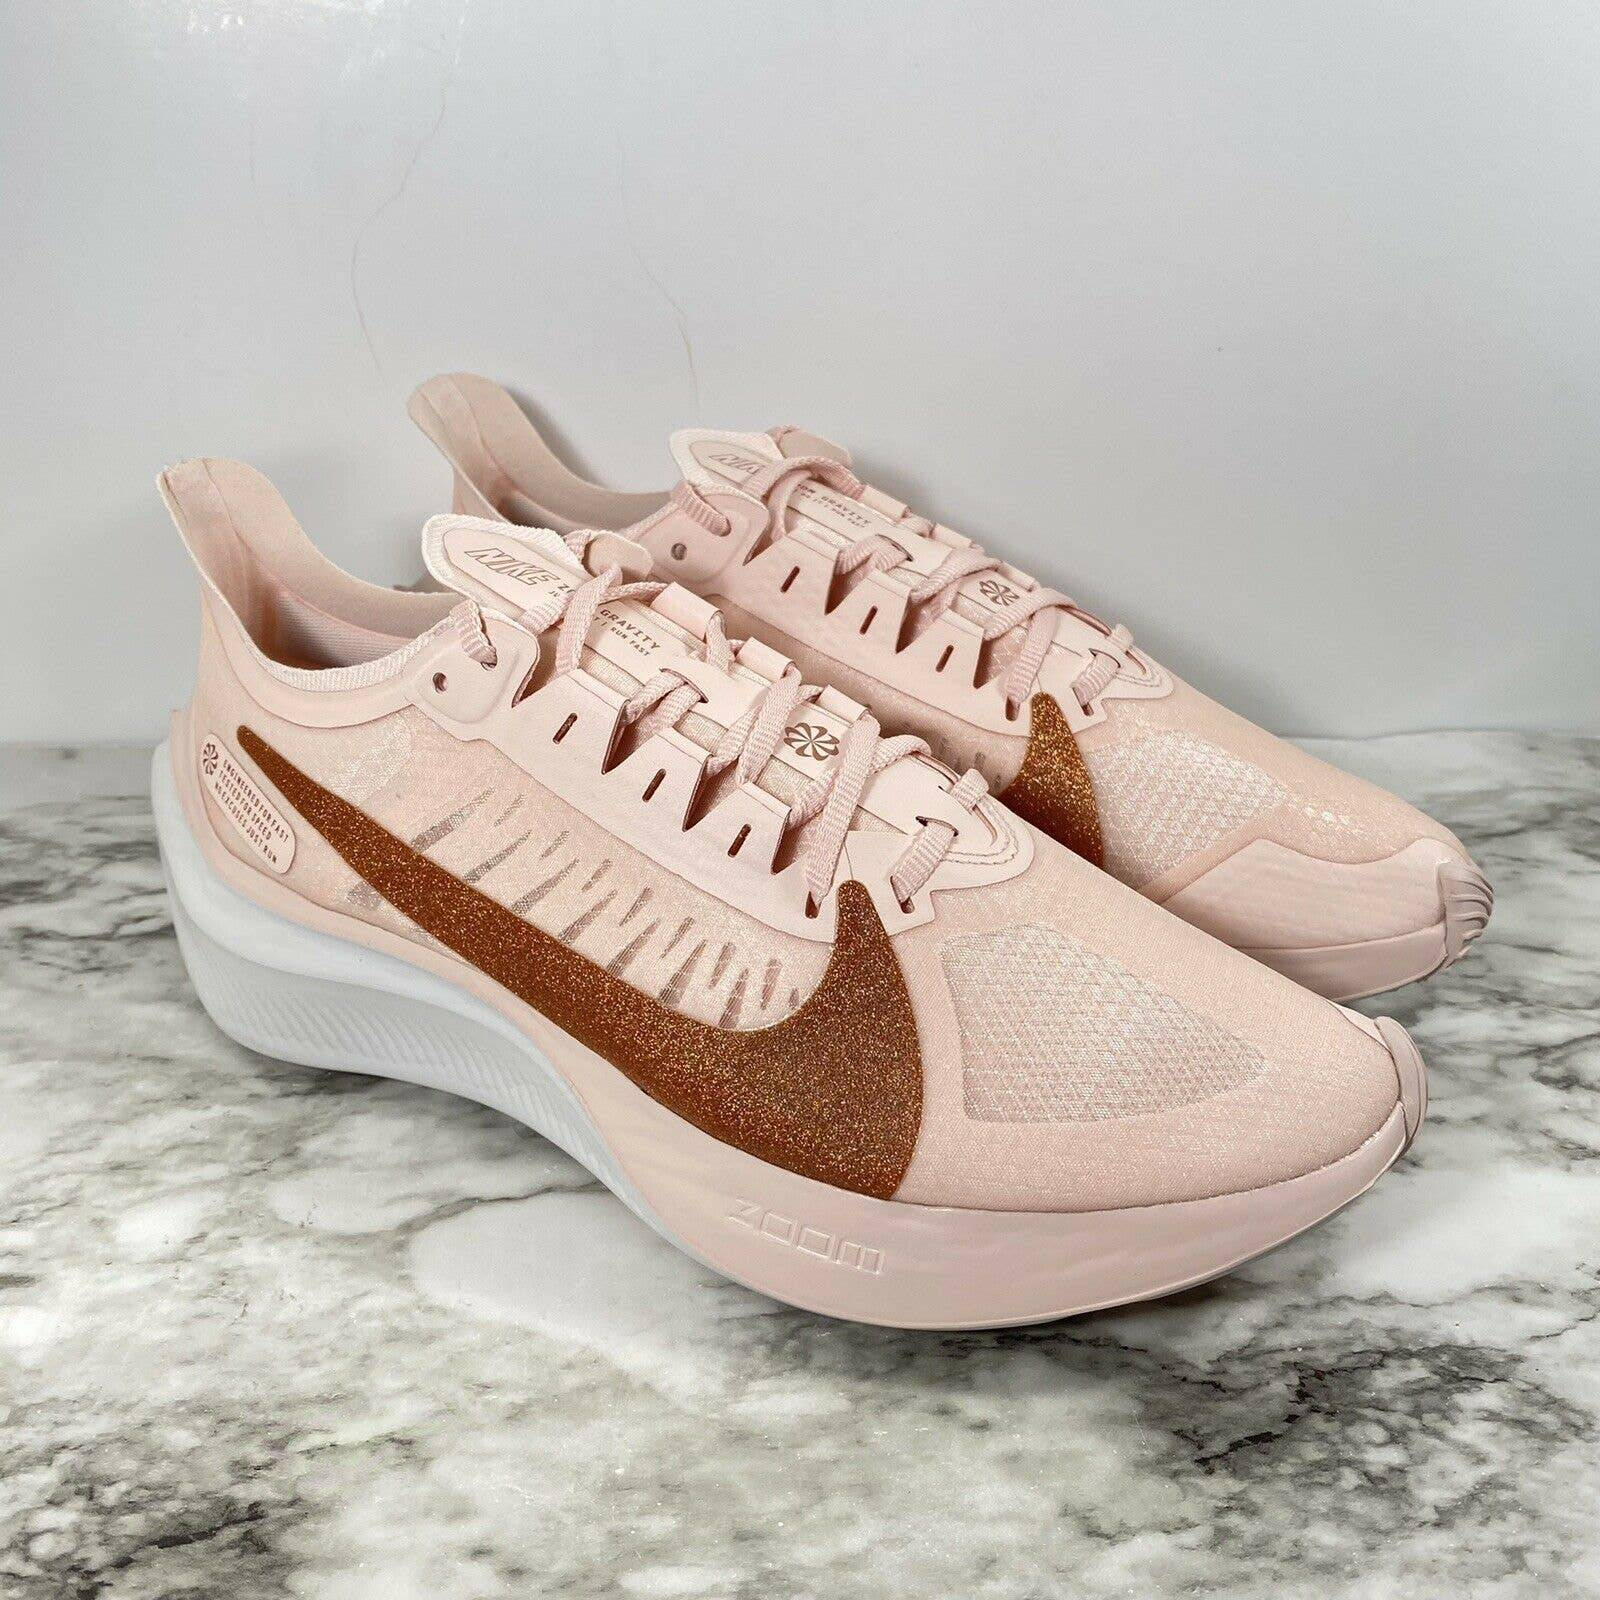 NEW Nike Zoom Gravity Pink Rose Gold